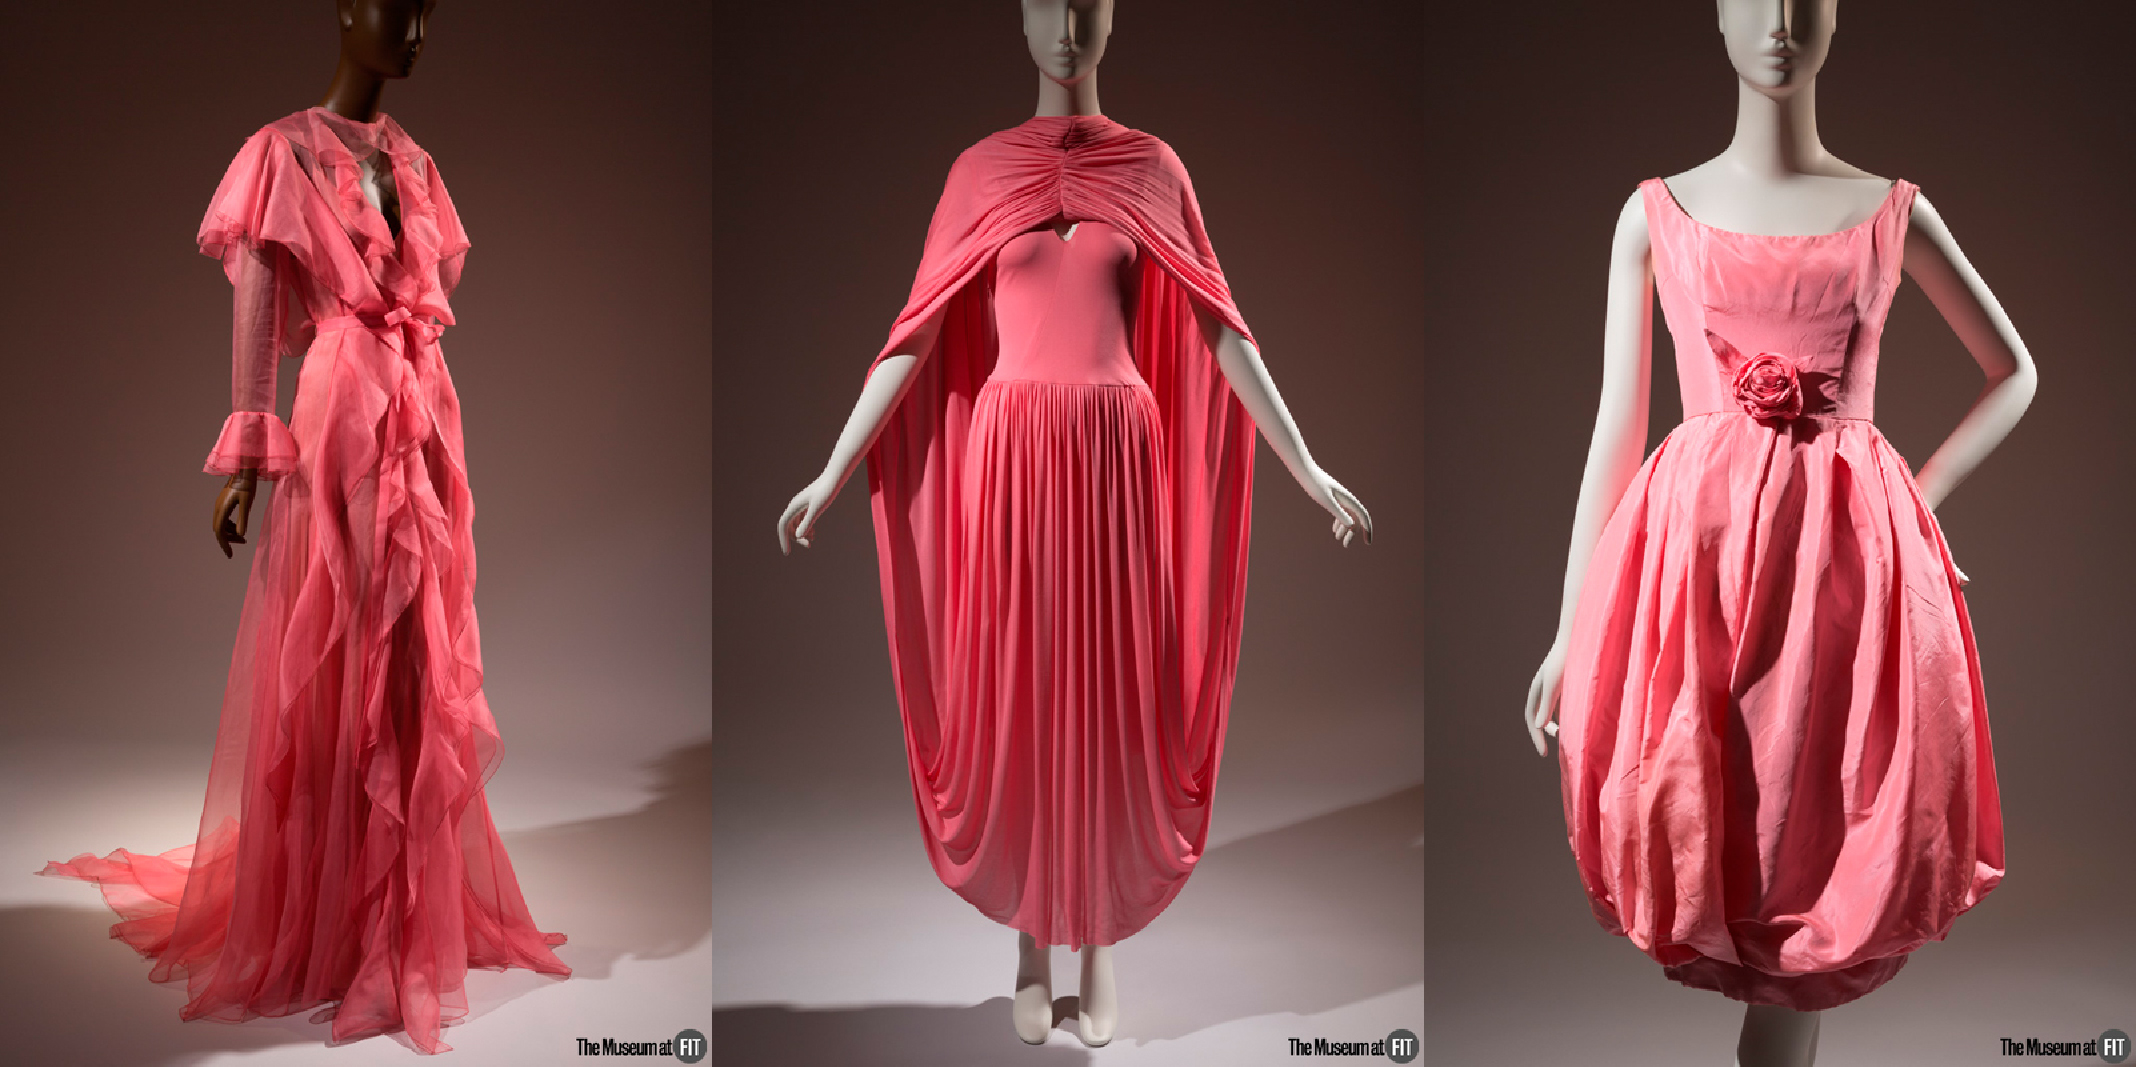 Gucci dress - Spring 2016, Italy, gift of Gucci.  Céline dress - Spring 2017, France, gift of Céline. 2017.19.1 Christian Dior, 1960, France, museum purchase.